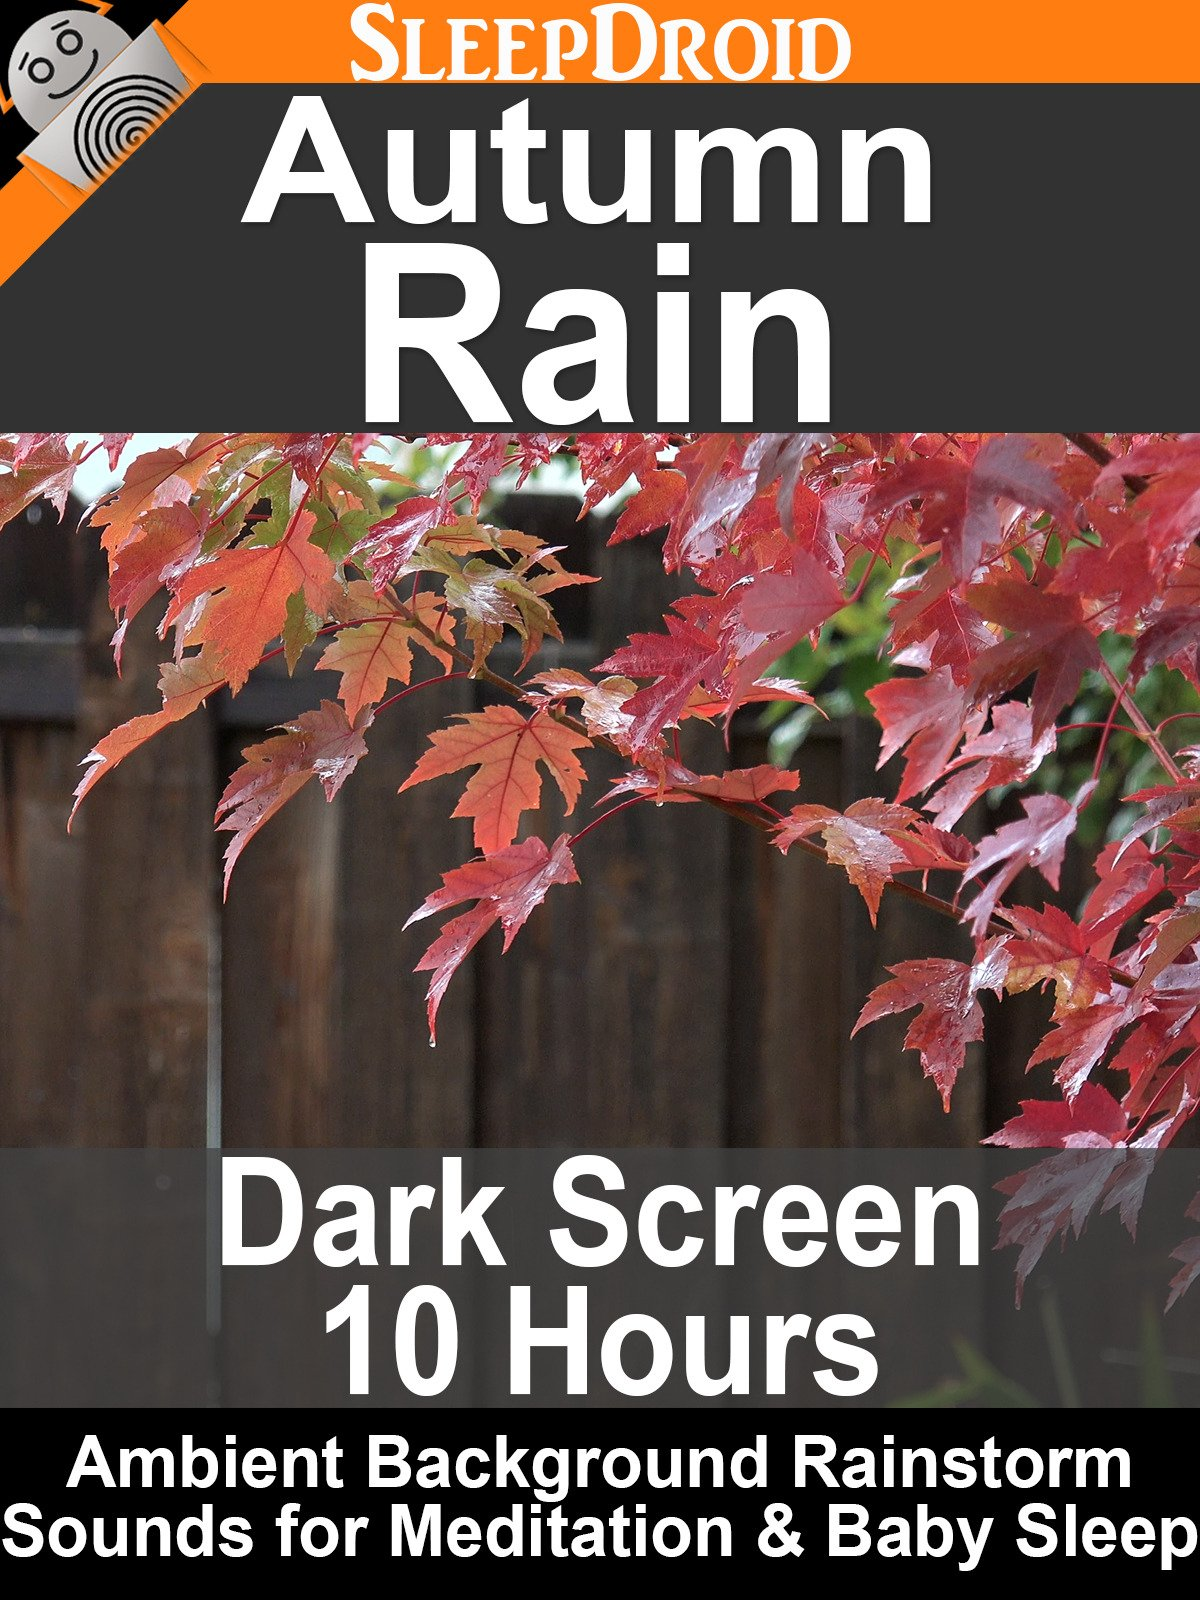 Autumn Rain, Dark Screen 10 Hours: Ambient Background Rainstorm Sounds for Meditation & Baby Sleep